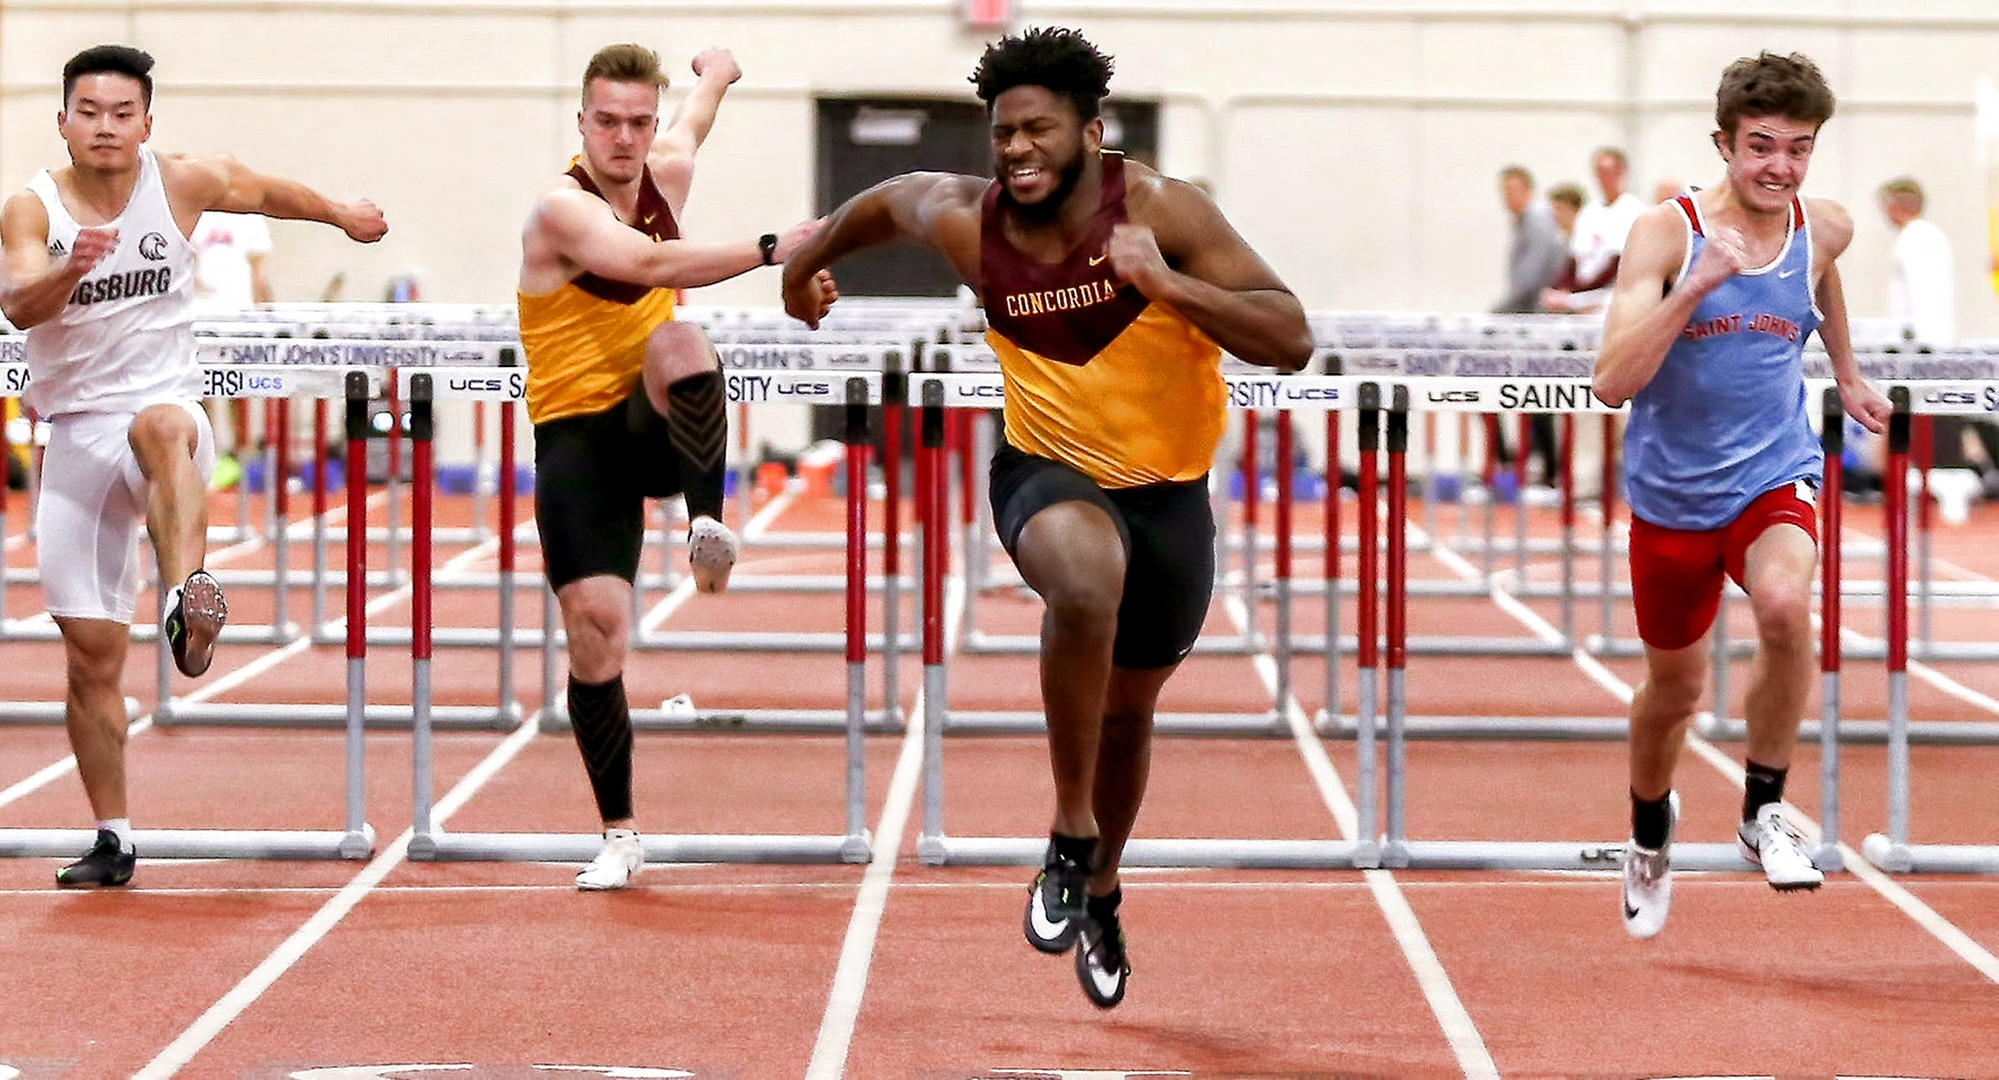 Willie Julkes stretches for the finish line in the prelims of the 60-meter hurdles at the MIAC Indoor Meet. He went on to set a school record in the finals of the event. (Photo courtesy of Nathan Lodermeier)